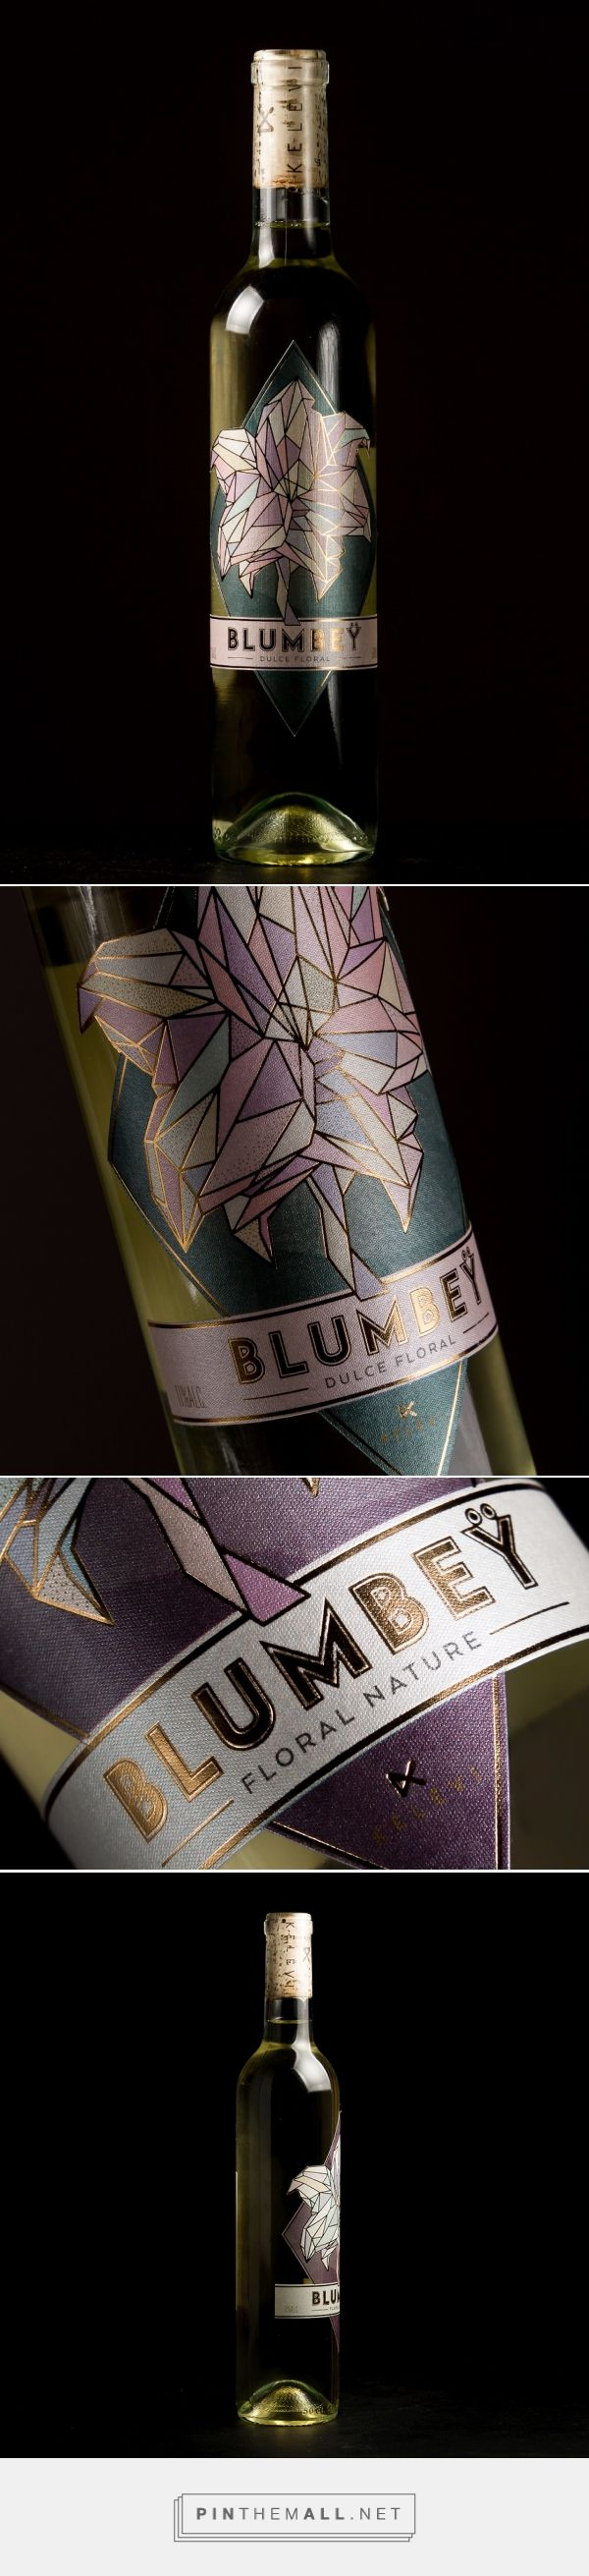 Blumbeÿ - Packaging of the World - Creative Package Design Gallery - http://www.packagingoftheworld.com/2017/09/blumbey.html